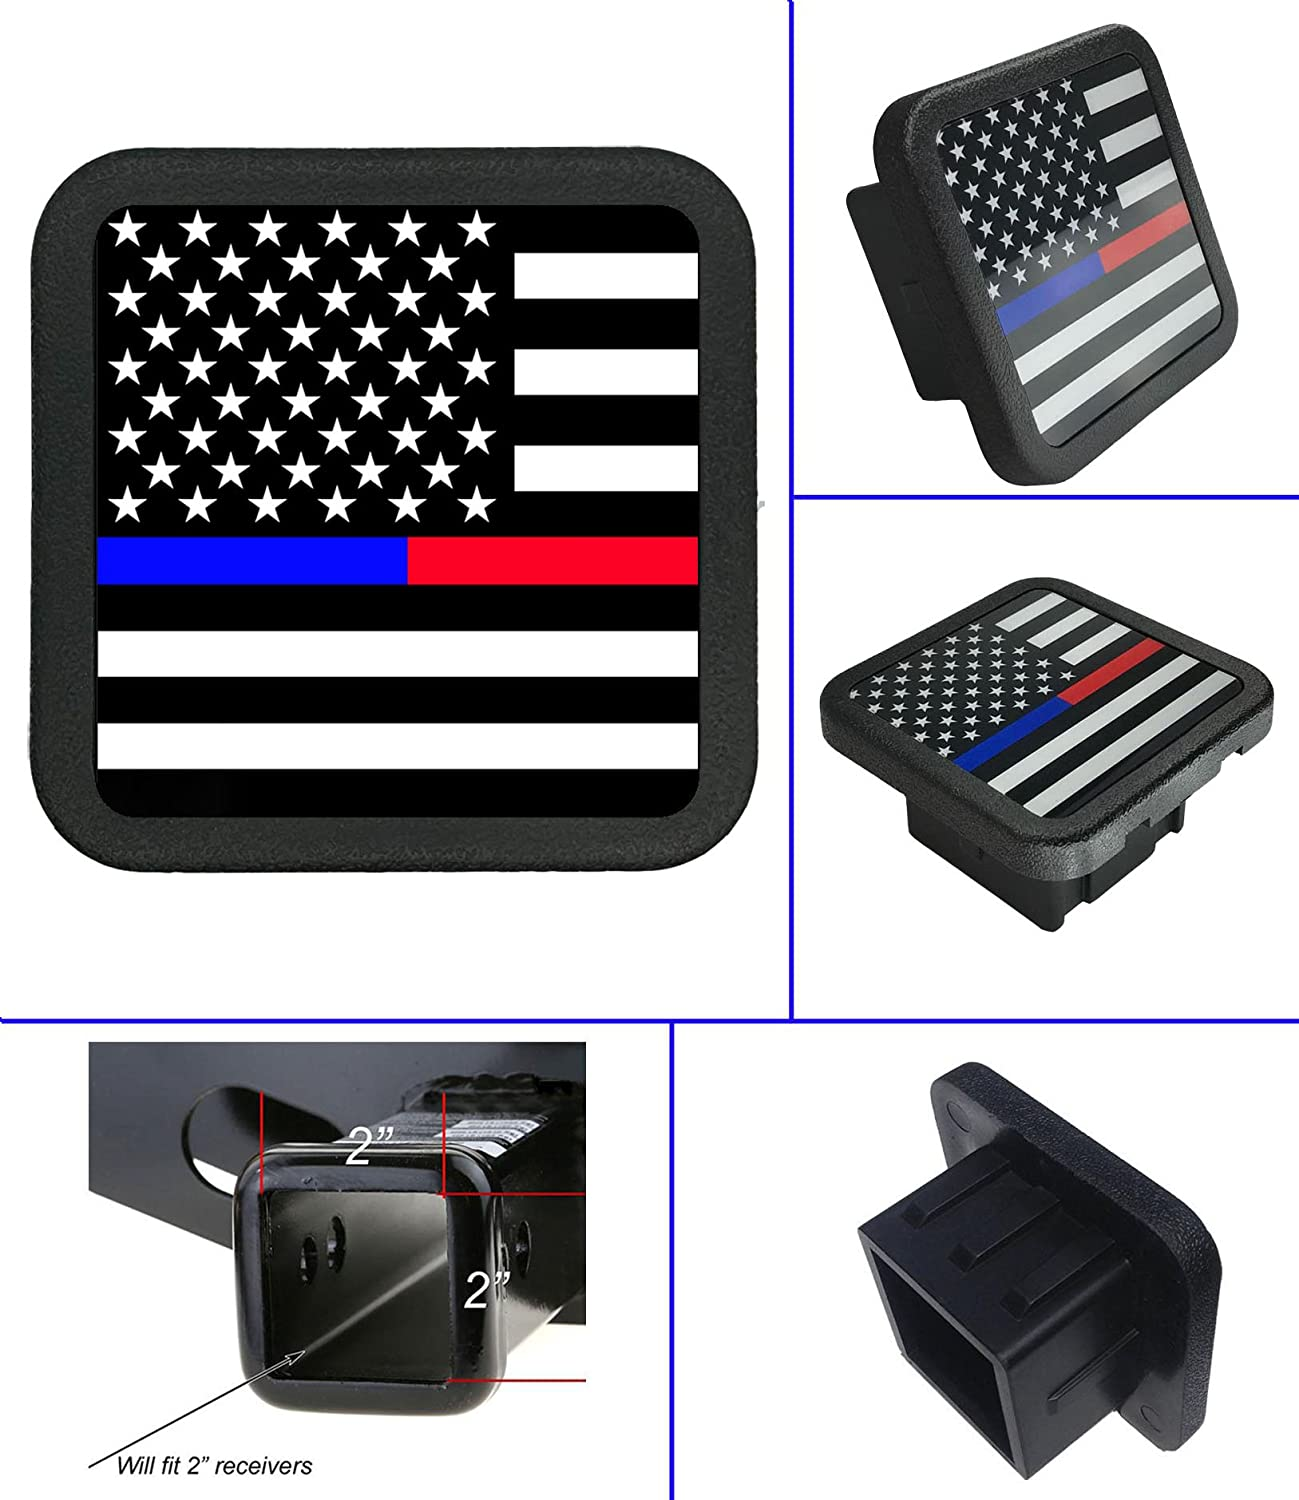 USA US American Flag Trailer Hitch Cover tube Plug Insert (Fits 2' Receivers) Free exercise